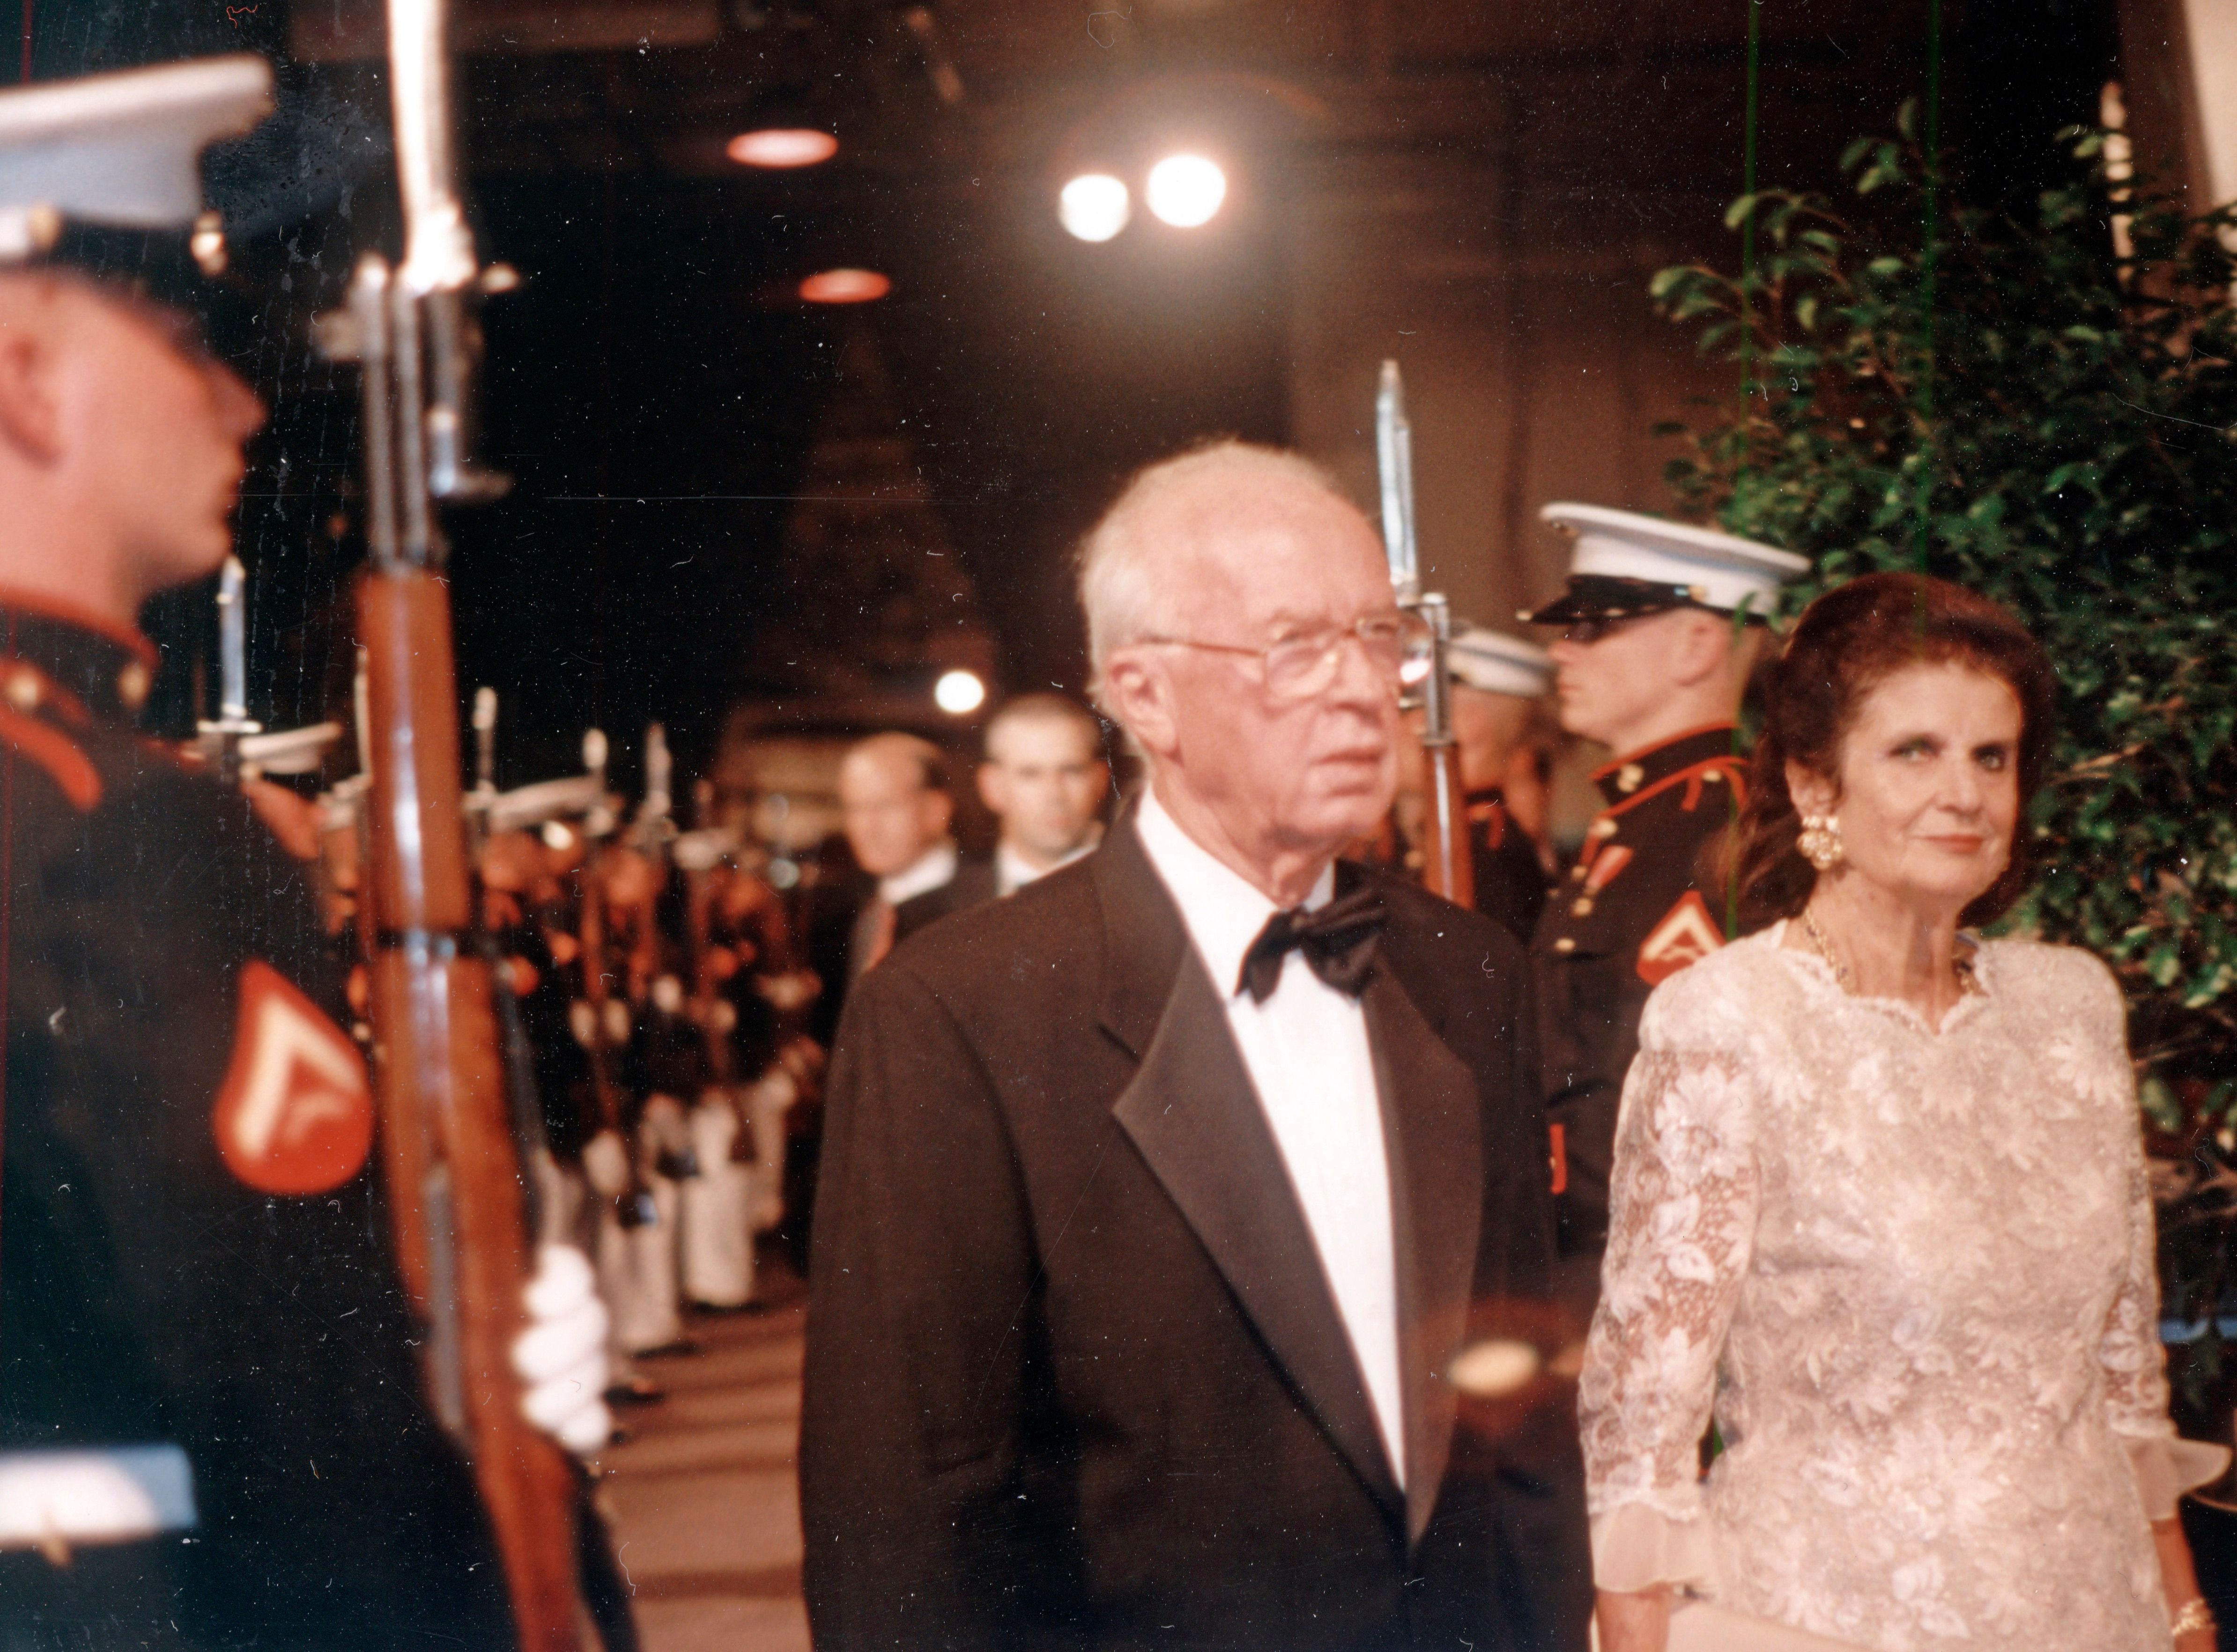 Yitzhak Rabin and wife Leah arrive at the Intrepid in 1995.